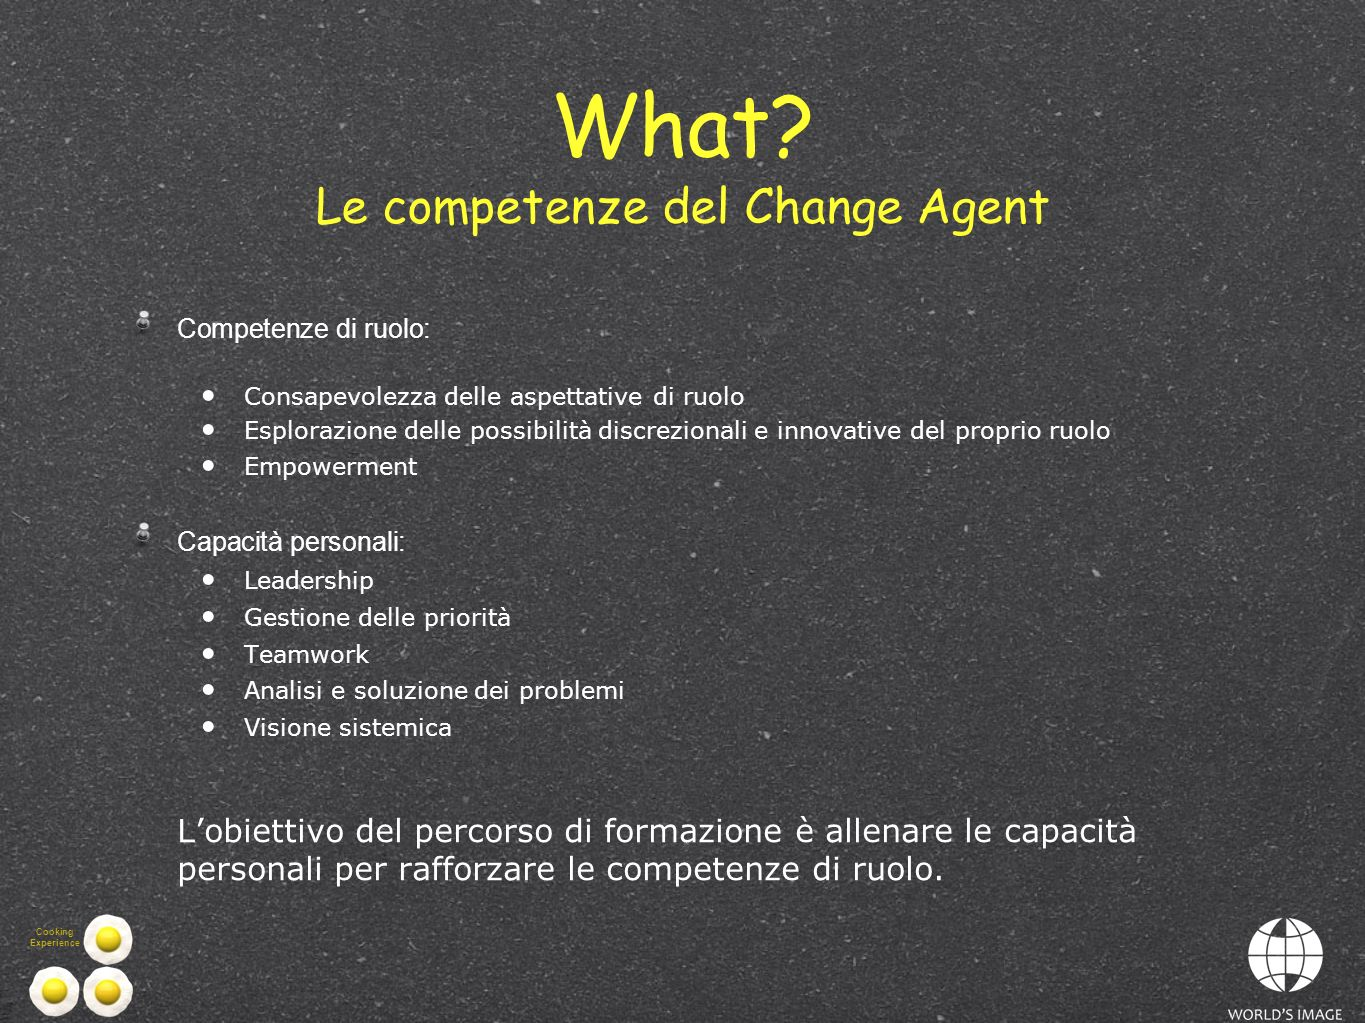 What Le competenze del Change Agent